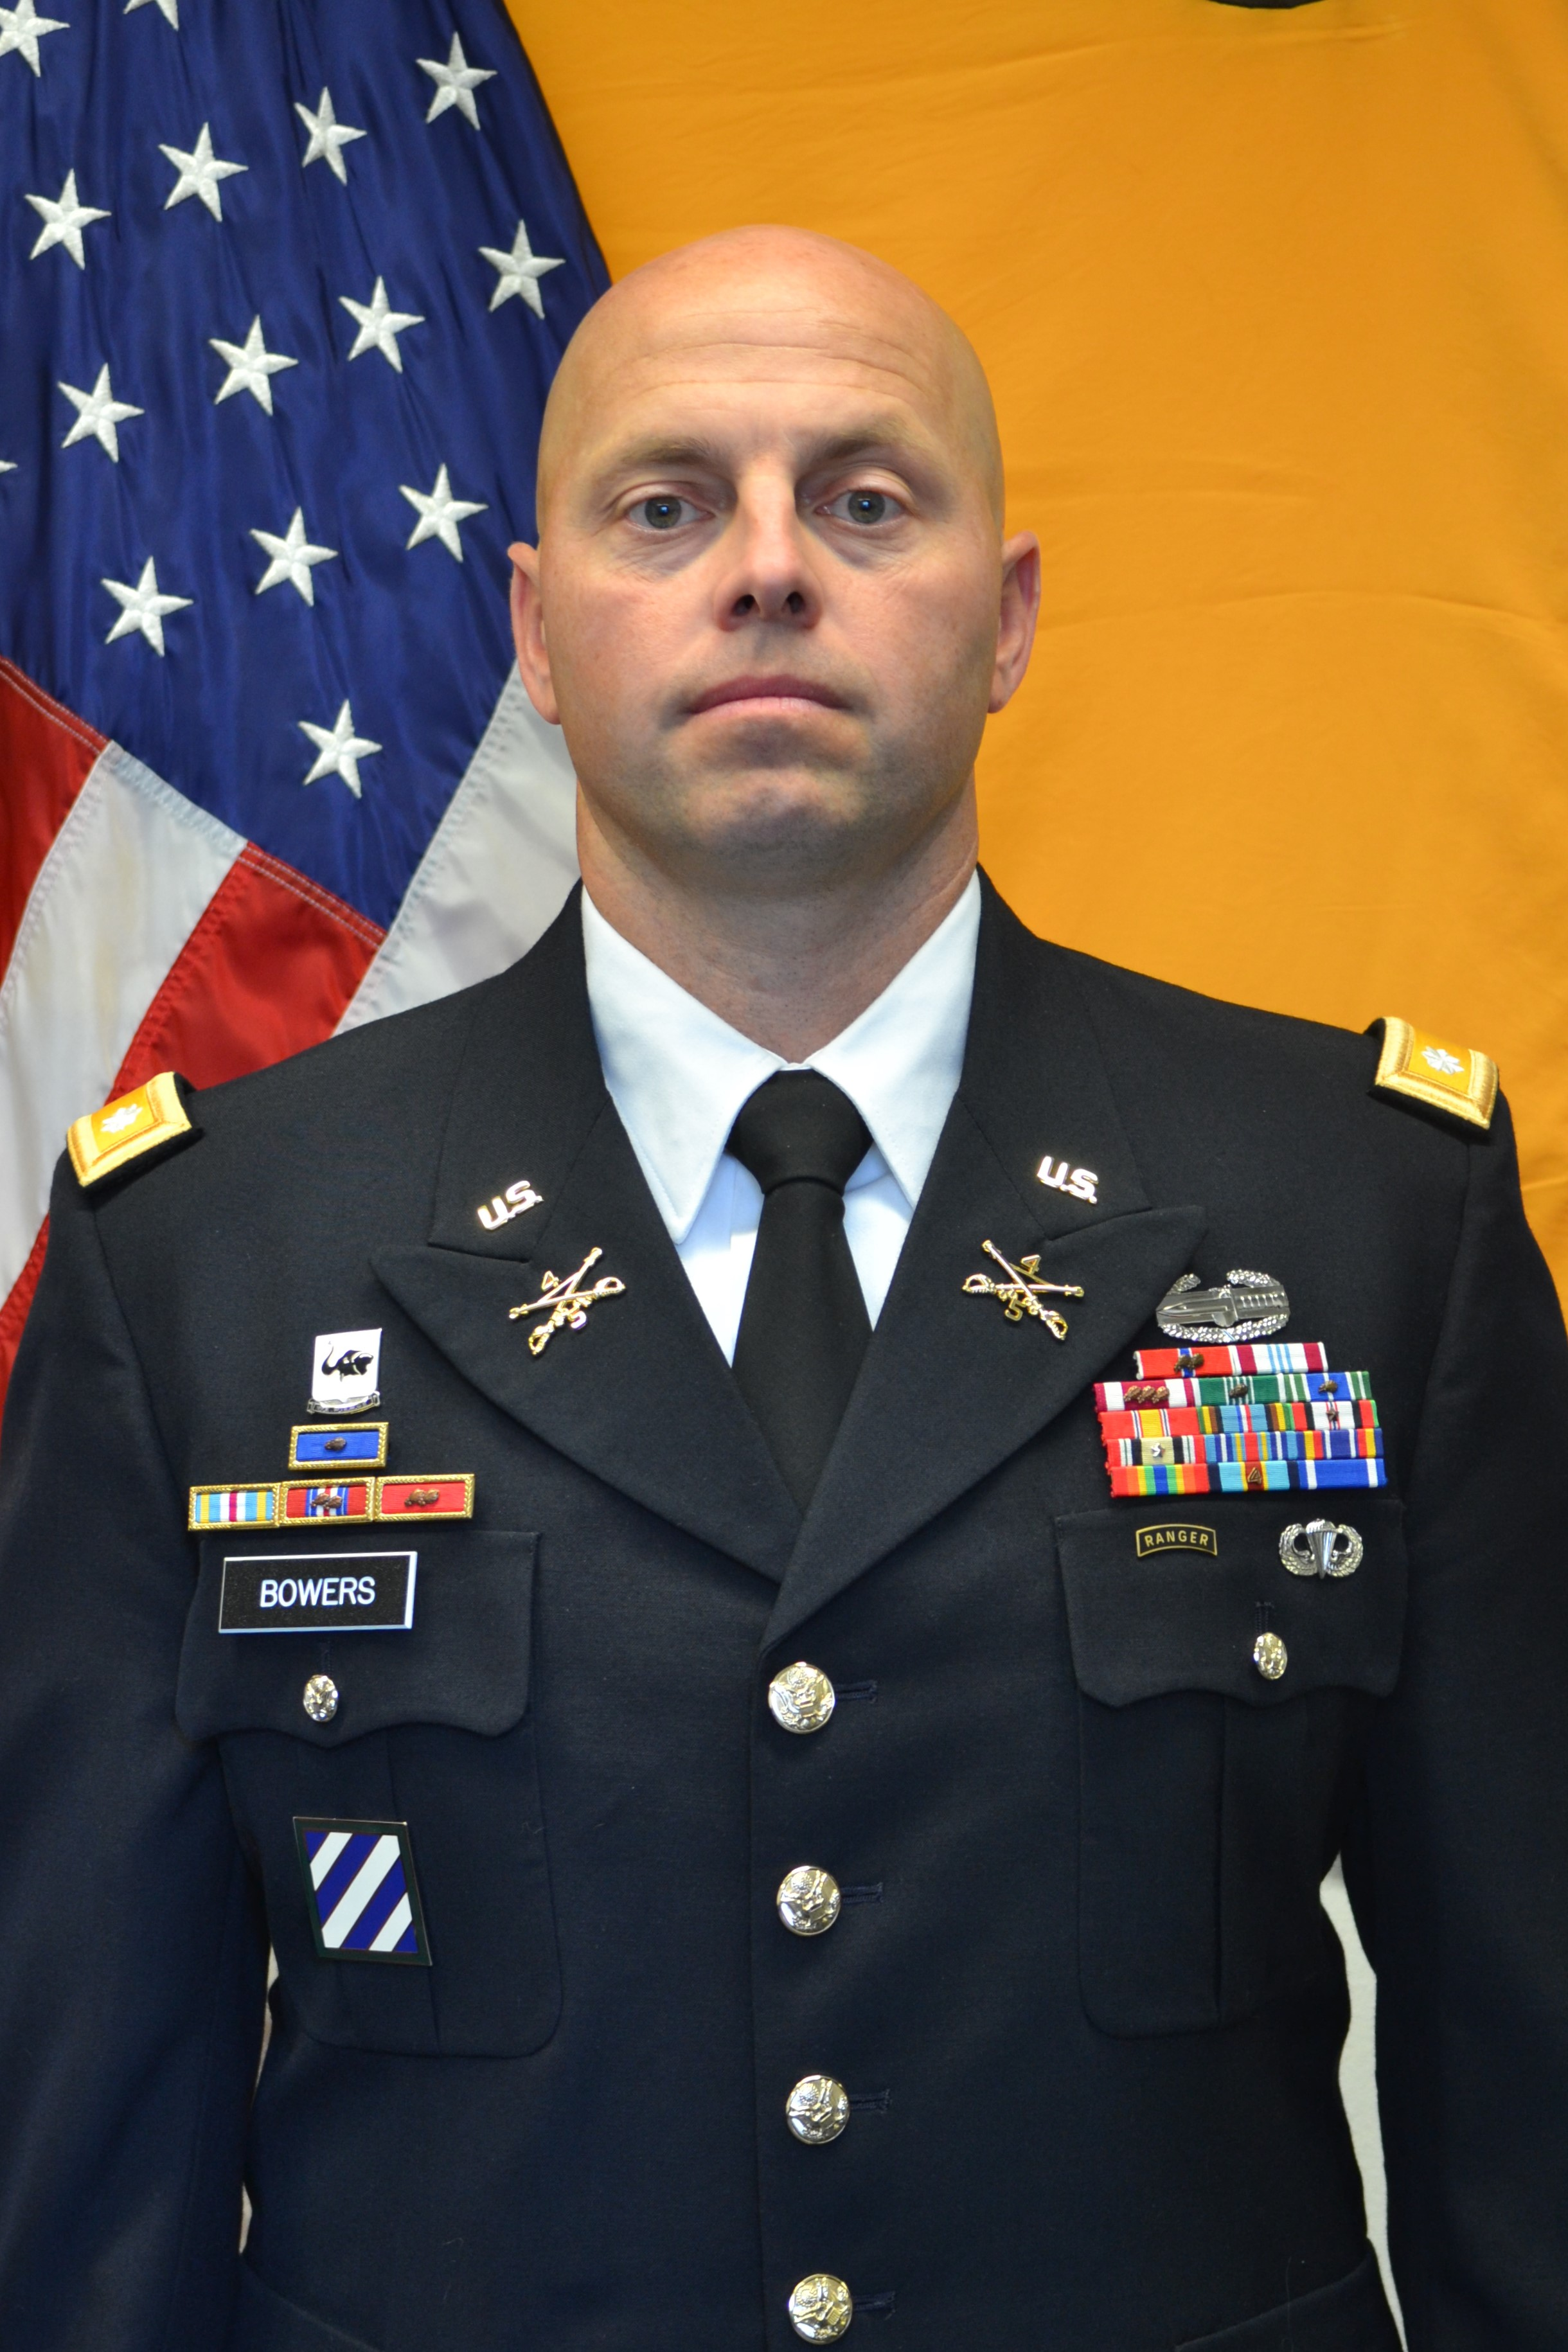 LTC Hunter Bowers